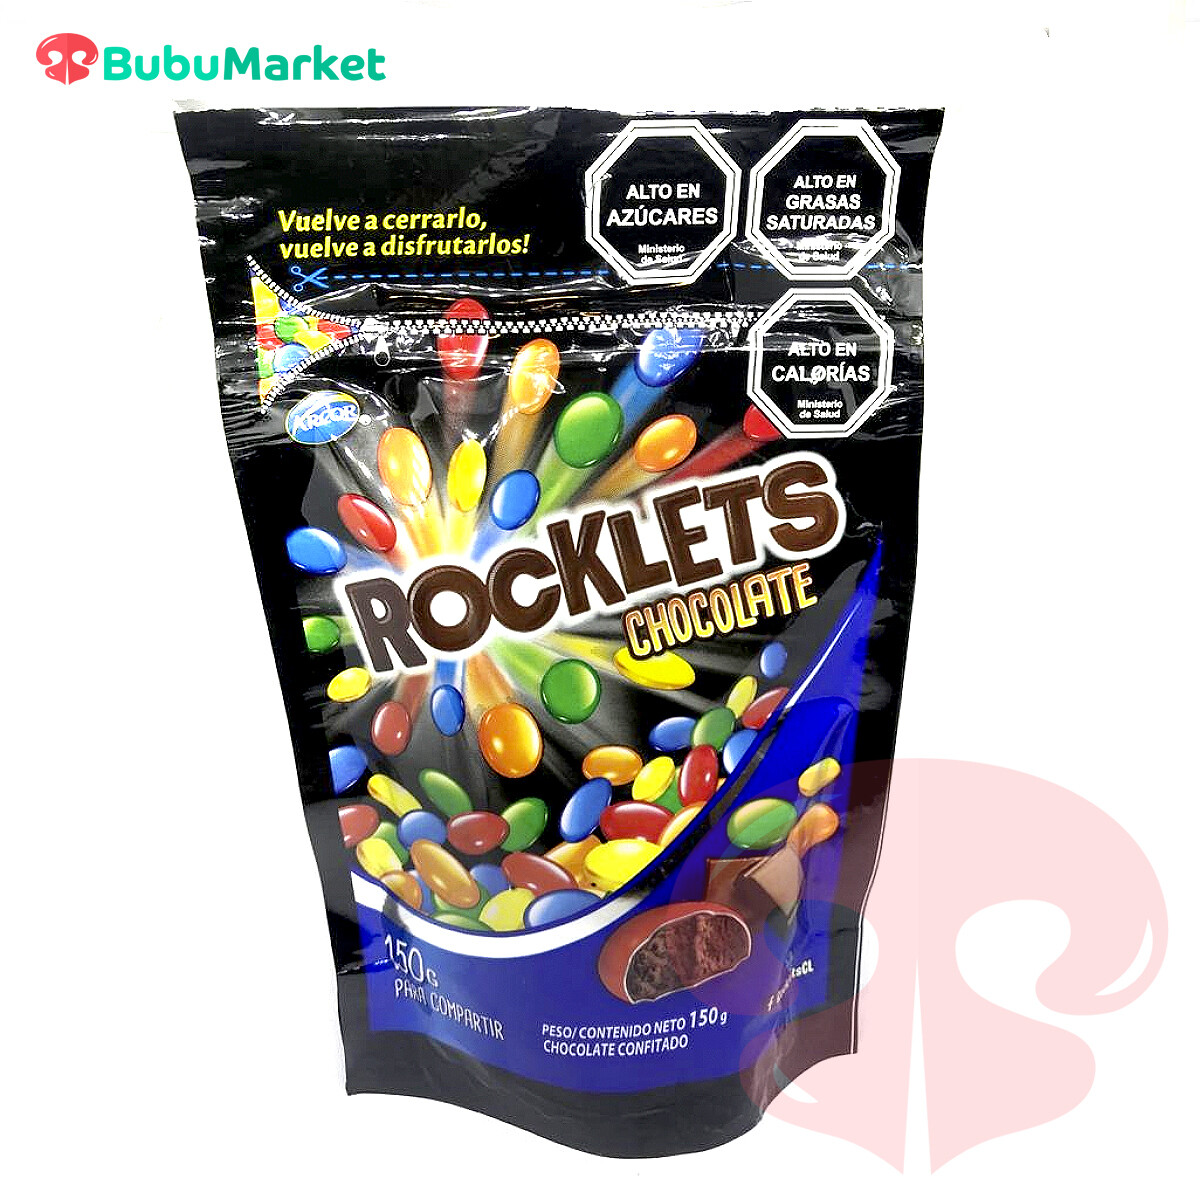 ROCKLETS CHOCOLATE CONFITADO ARCOR BOLSA DE 150 GR.